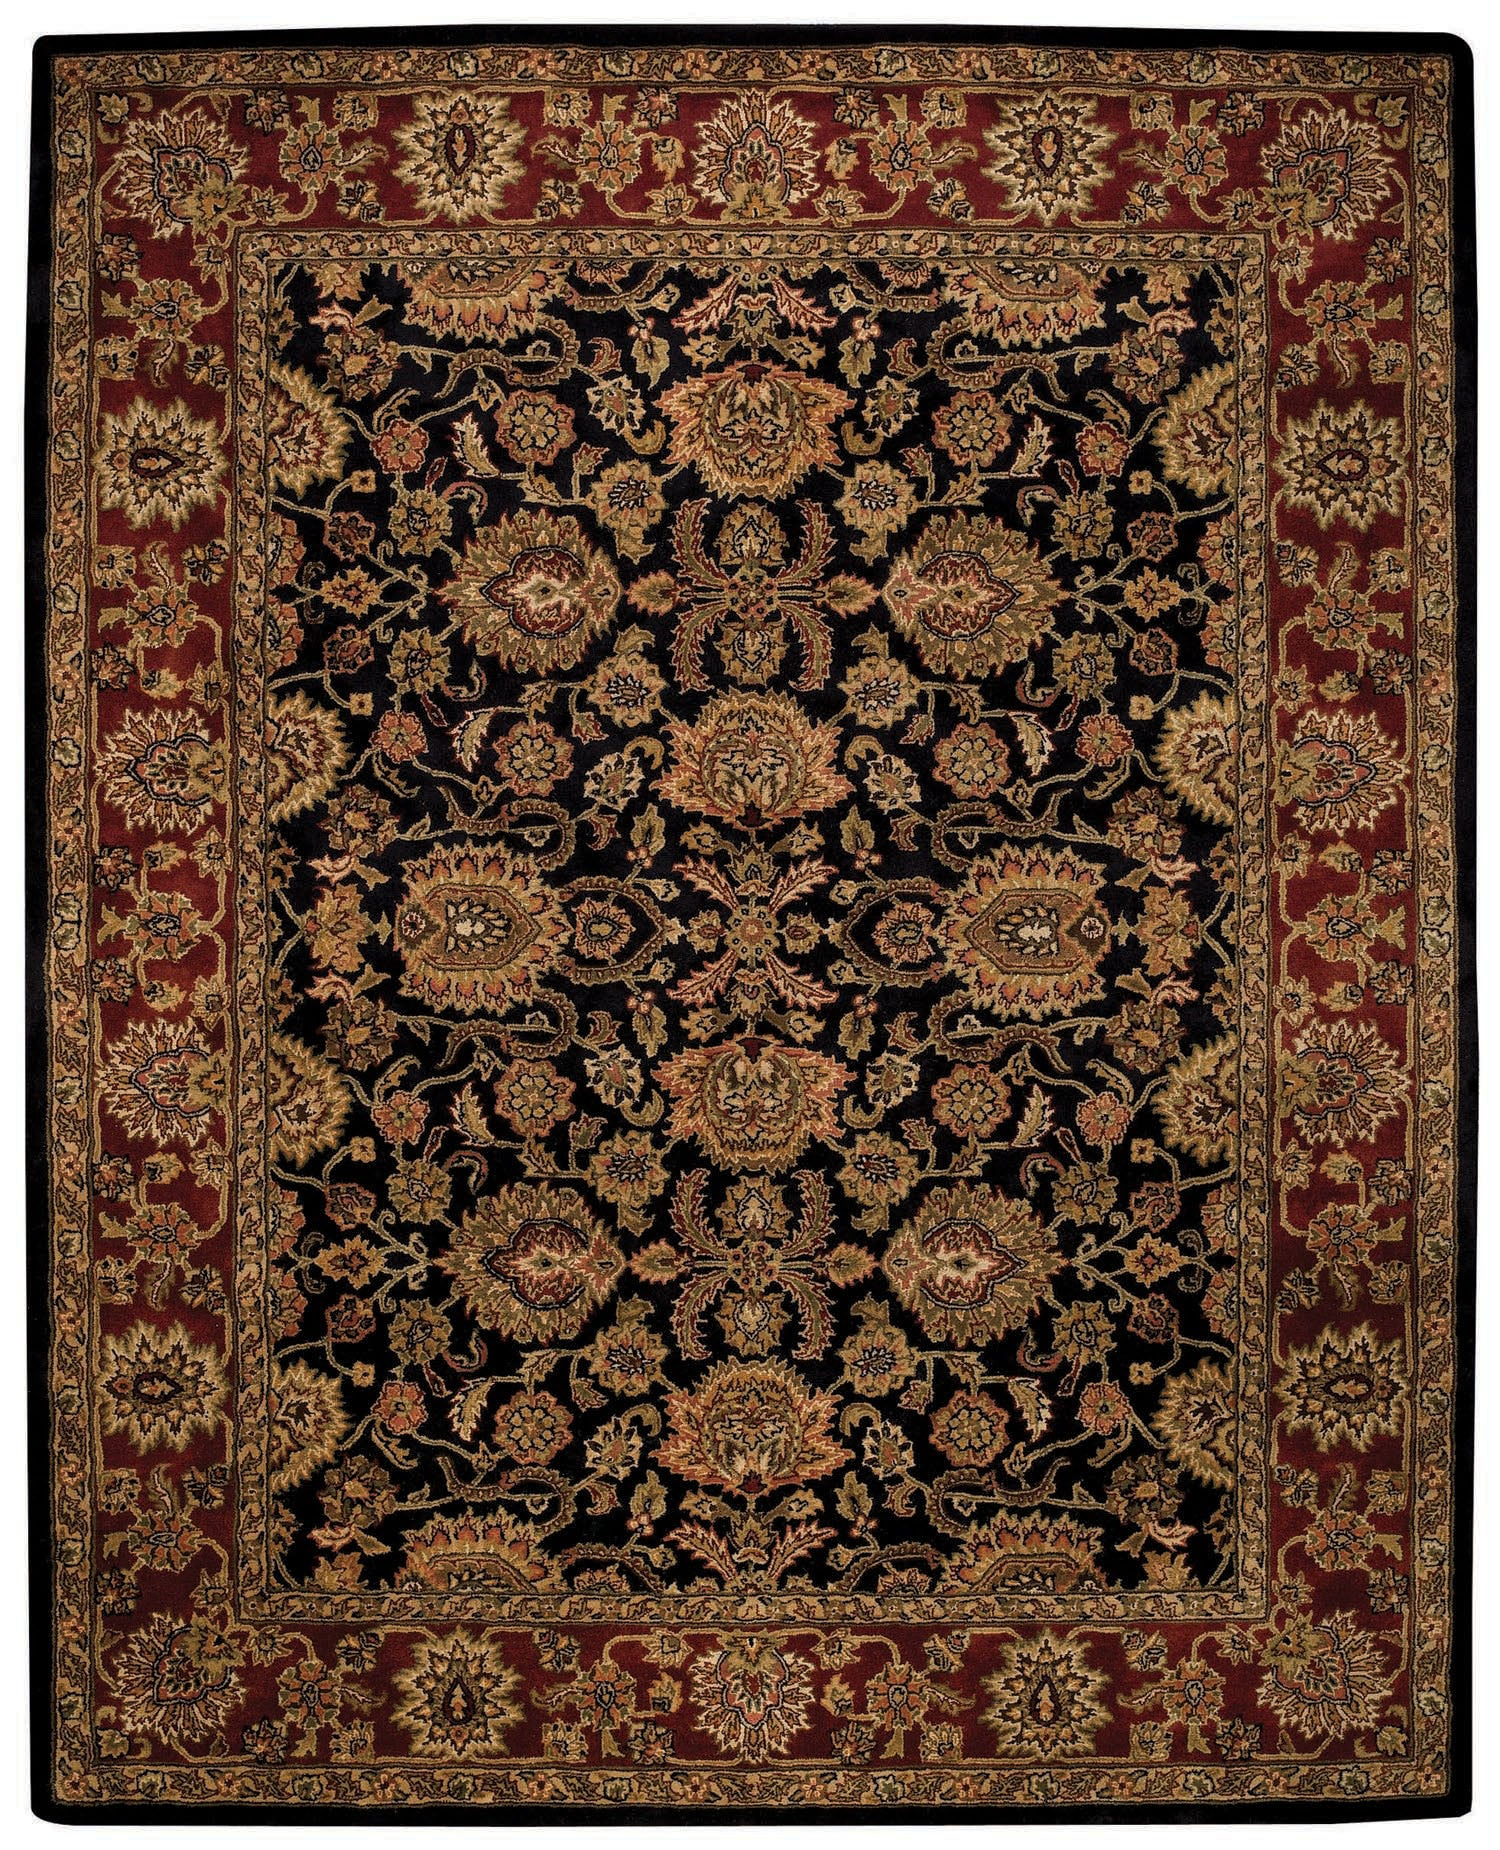 Capel Piedmont Persian 3366 Ebony 350 Area Rug main image